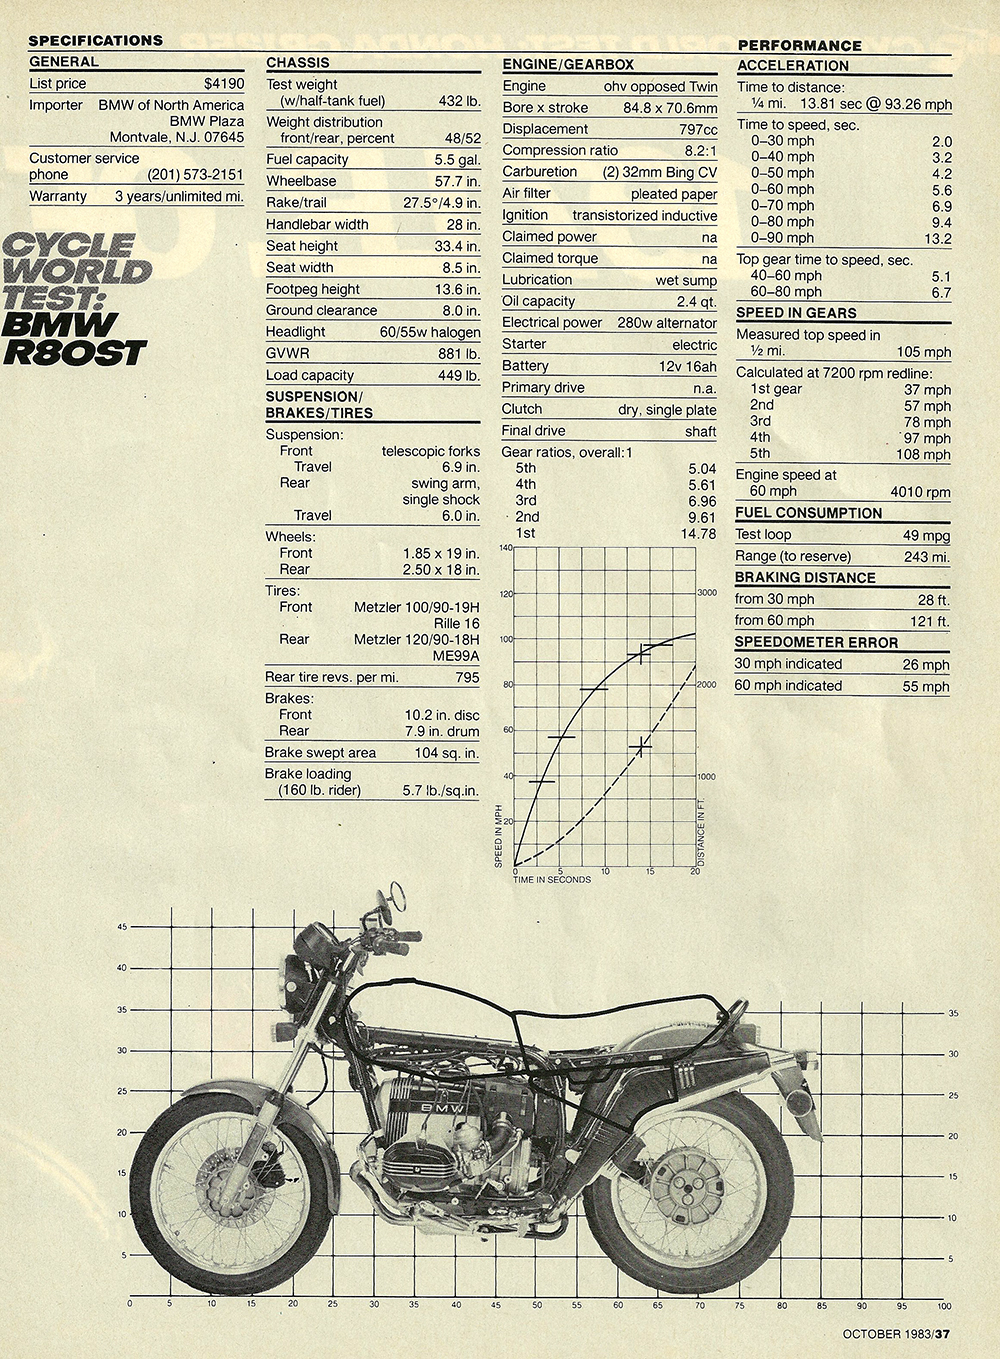 1983 BMW R80ST road test 05.jpg